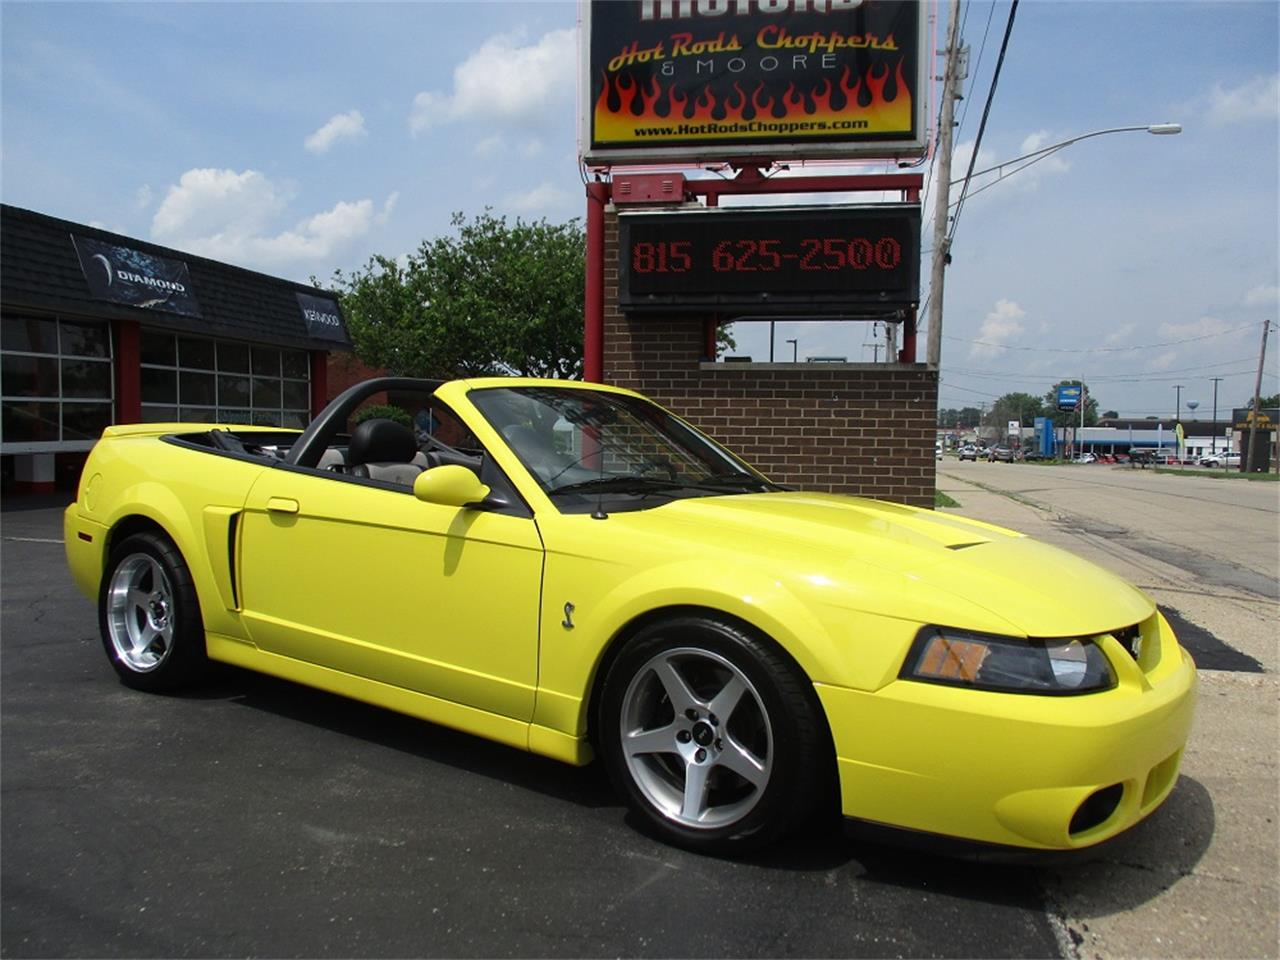 Large picture of 03 mustang svt cobra nnxt